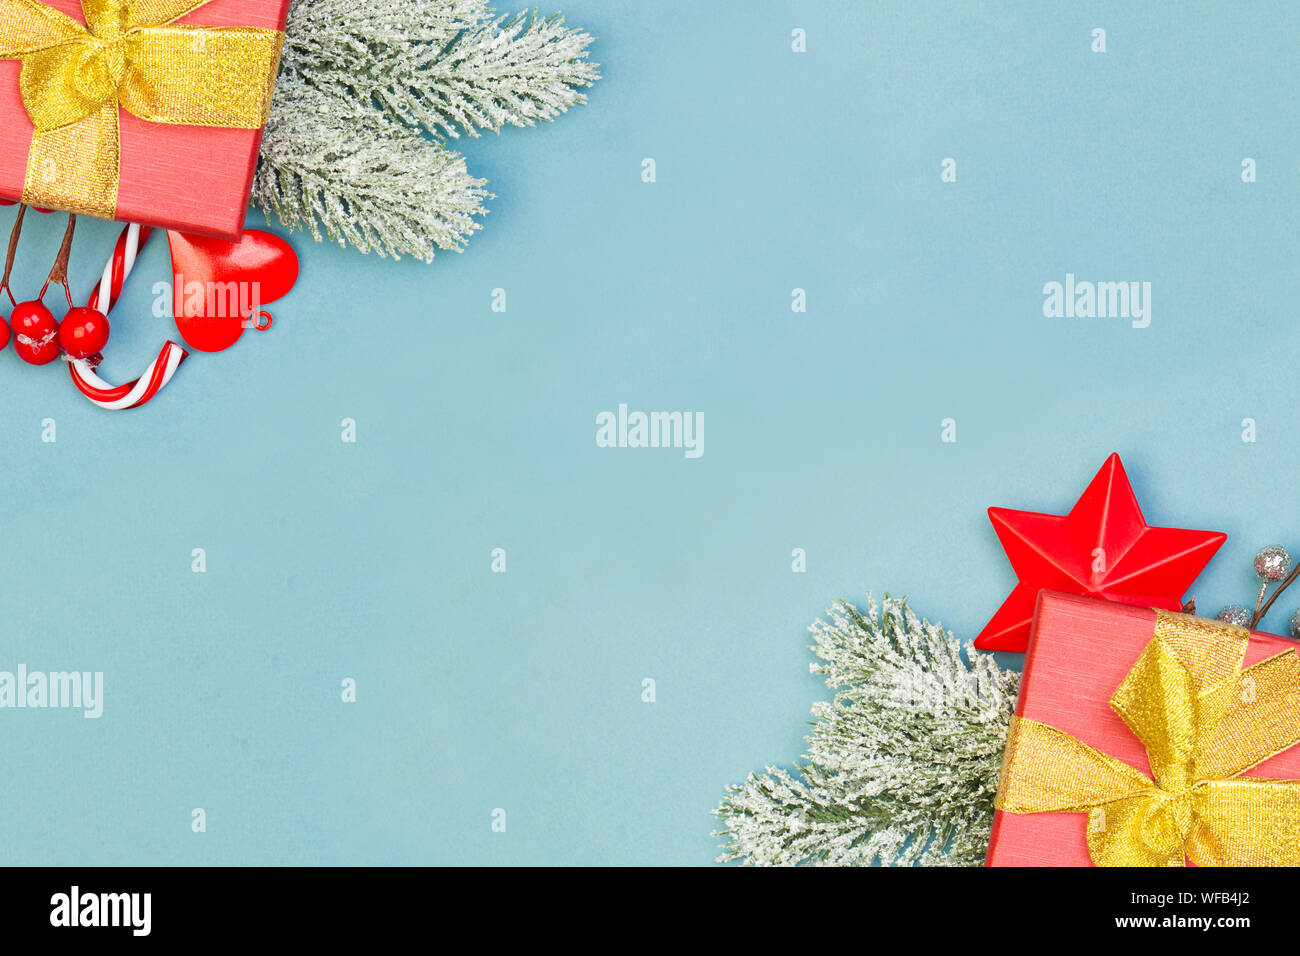 Christmas composition border with red gifts, holly berries and green fir branch on blue background Stock Photo